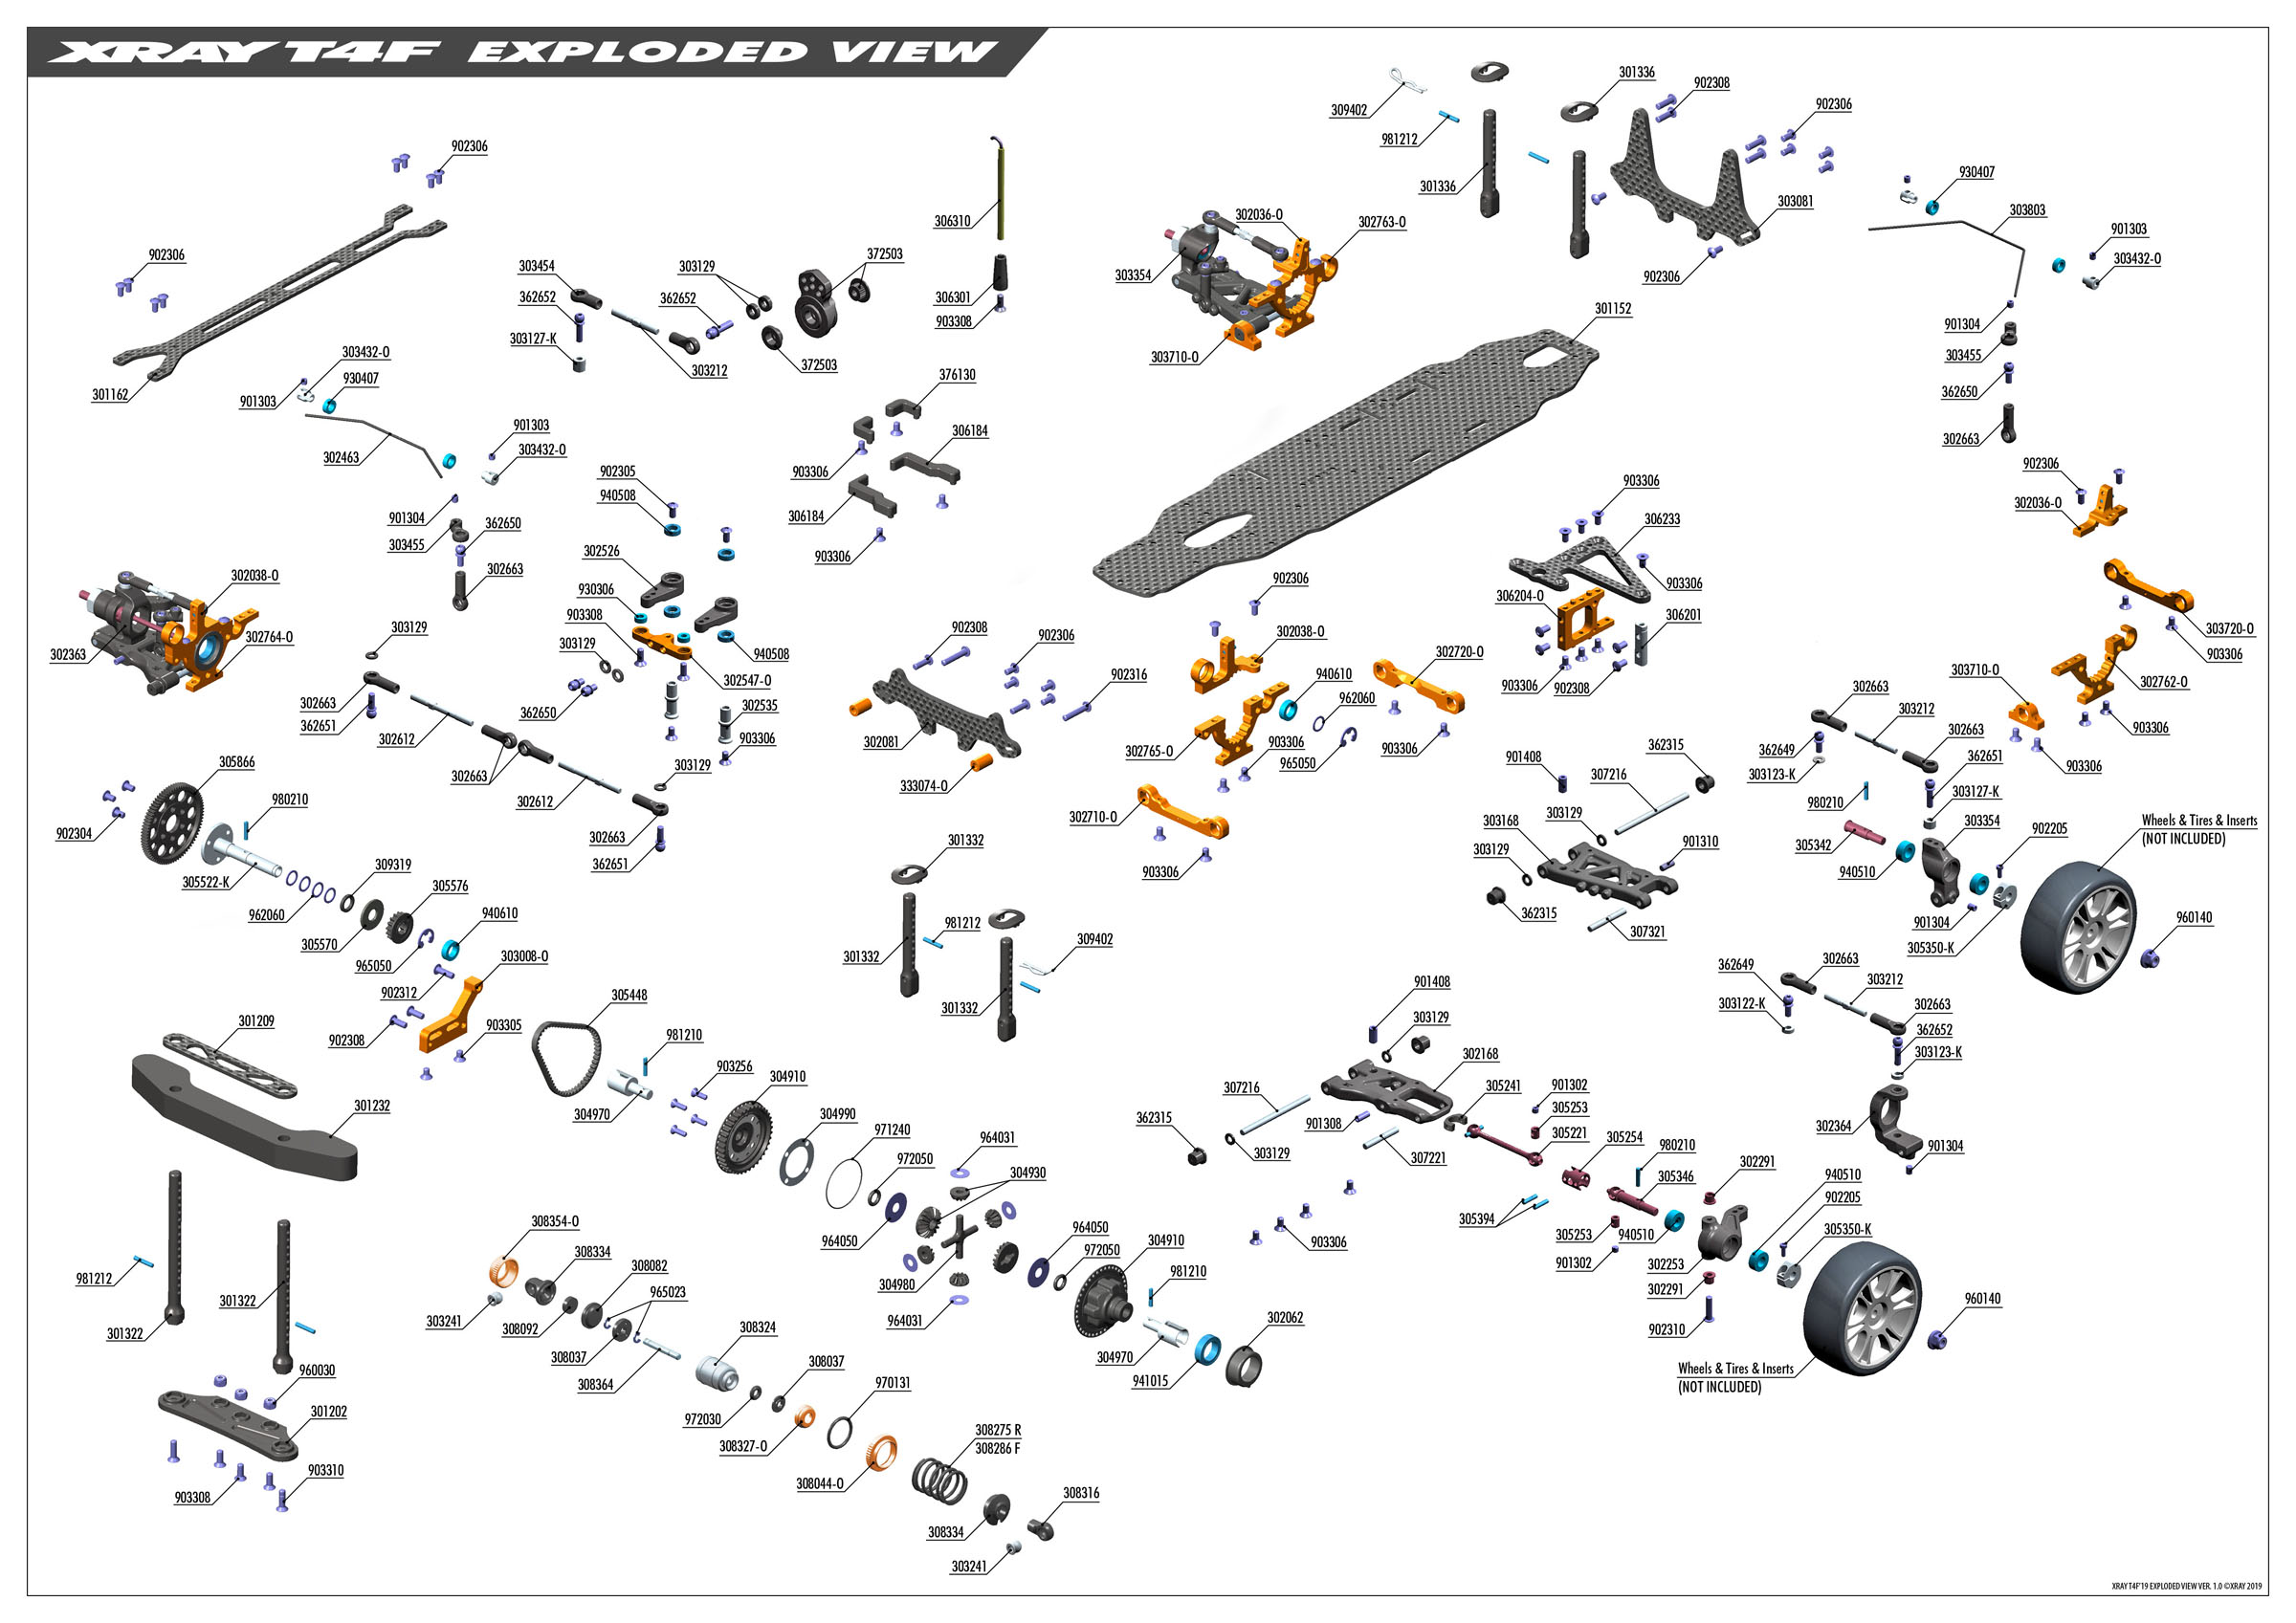 t4f_2019_exploded_view